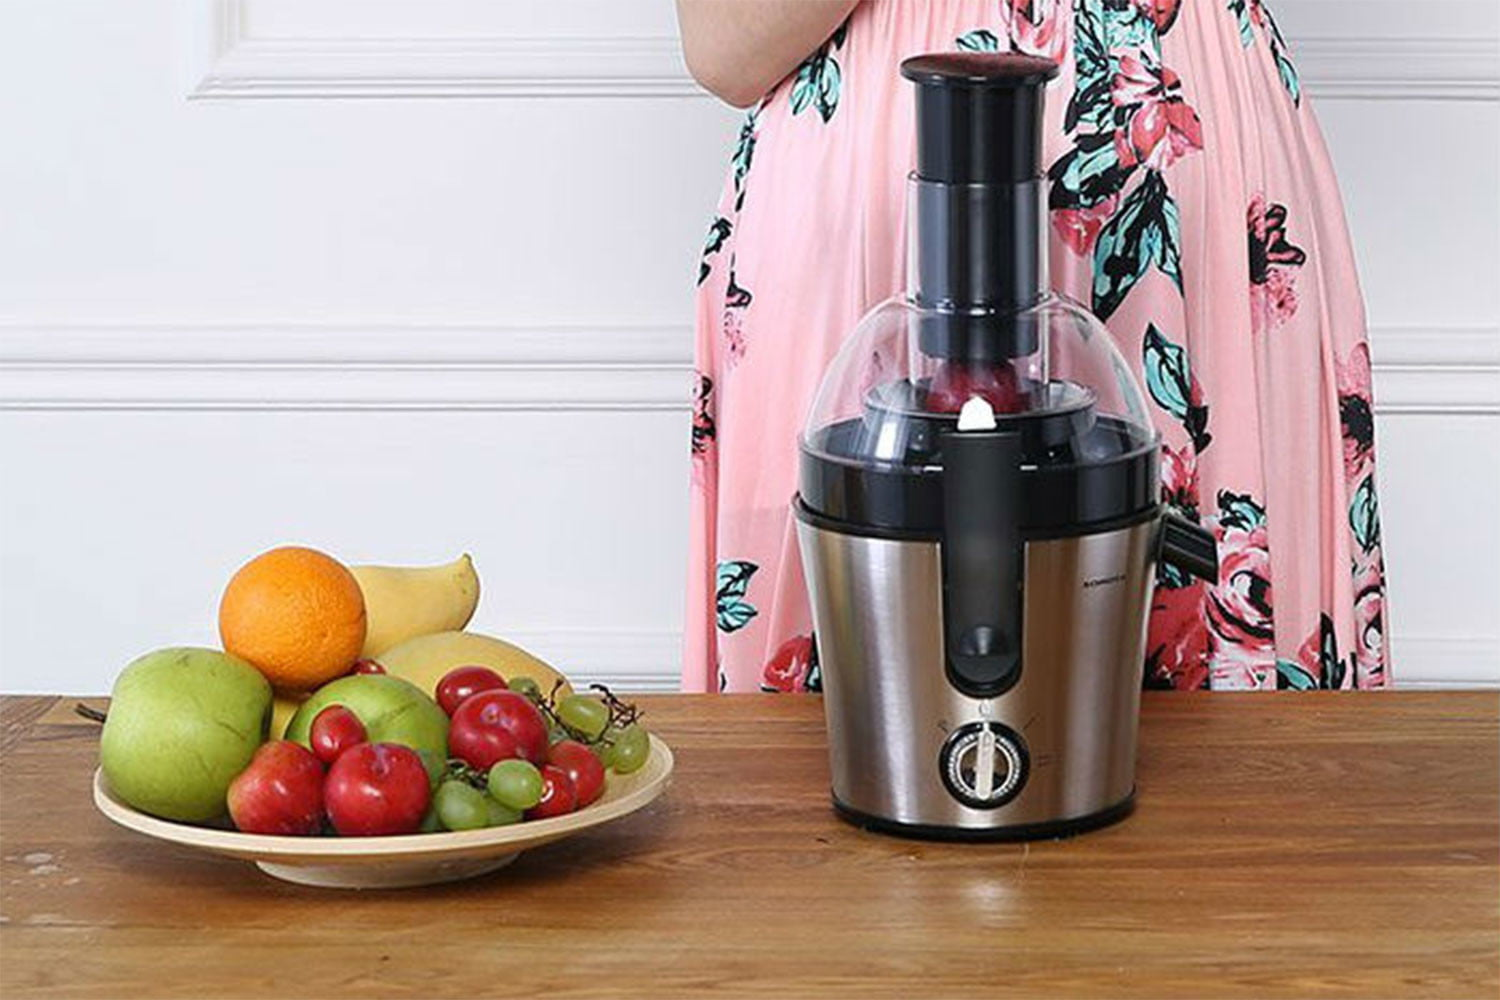 the girl is standing next to the juicer